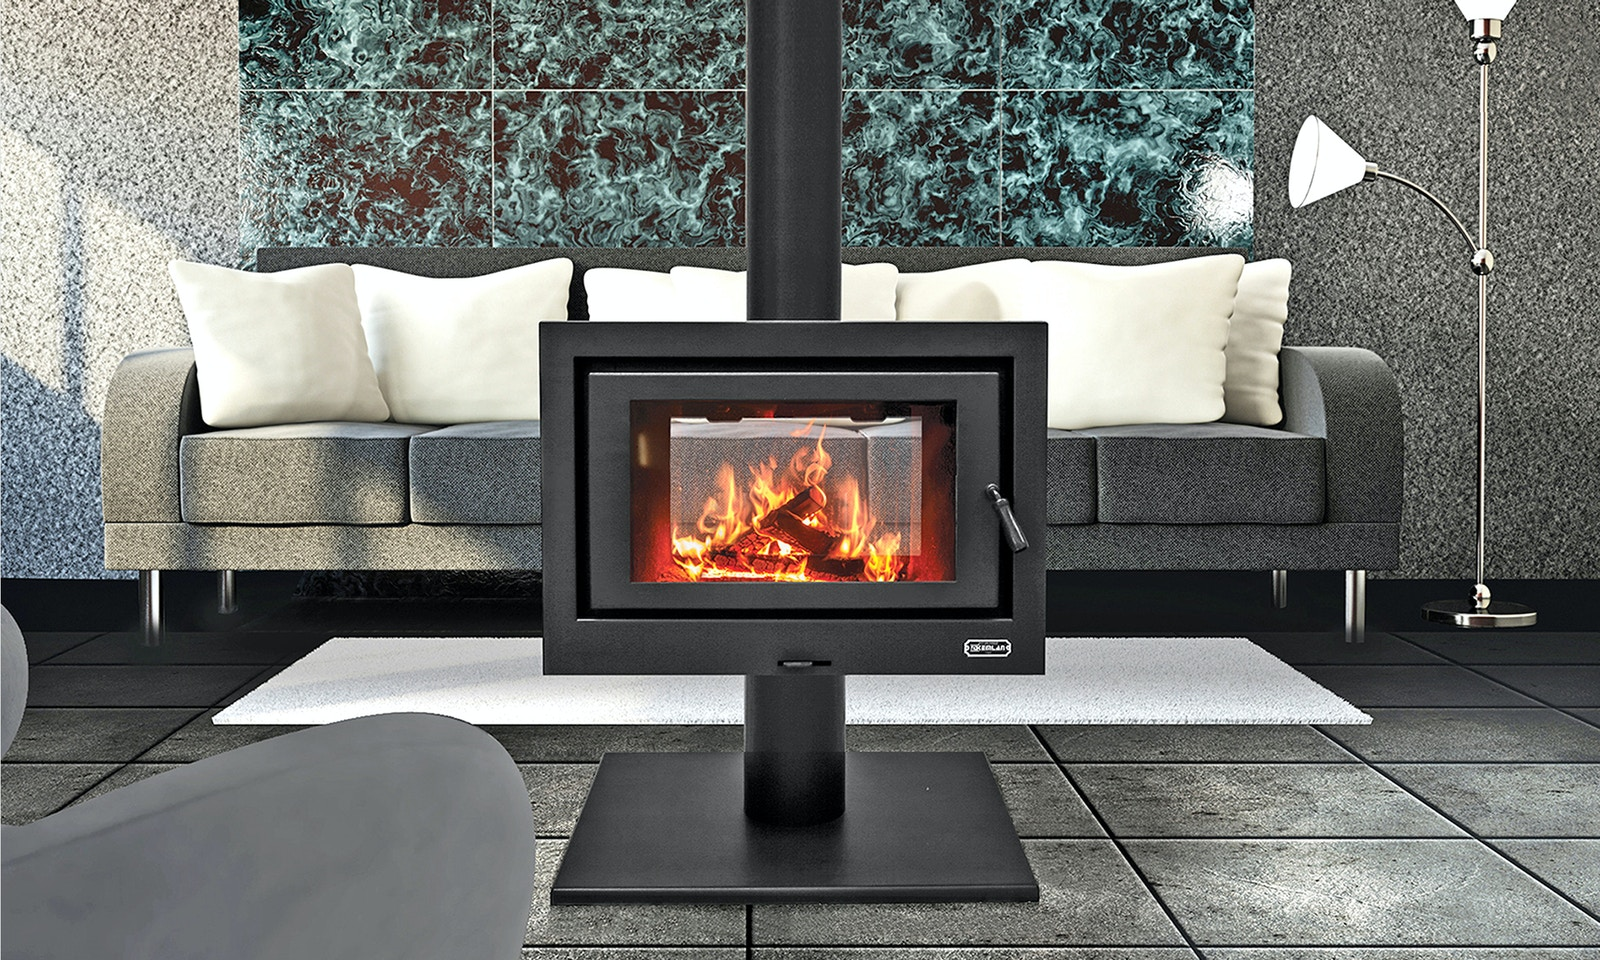 An Australian Fireplace for Australian Conditions